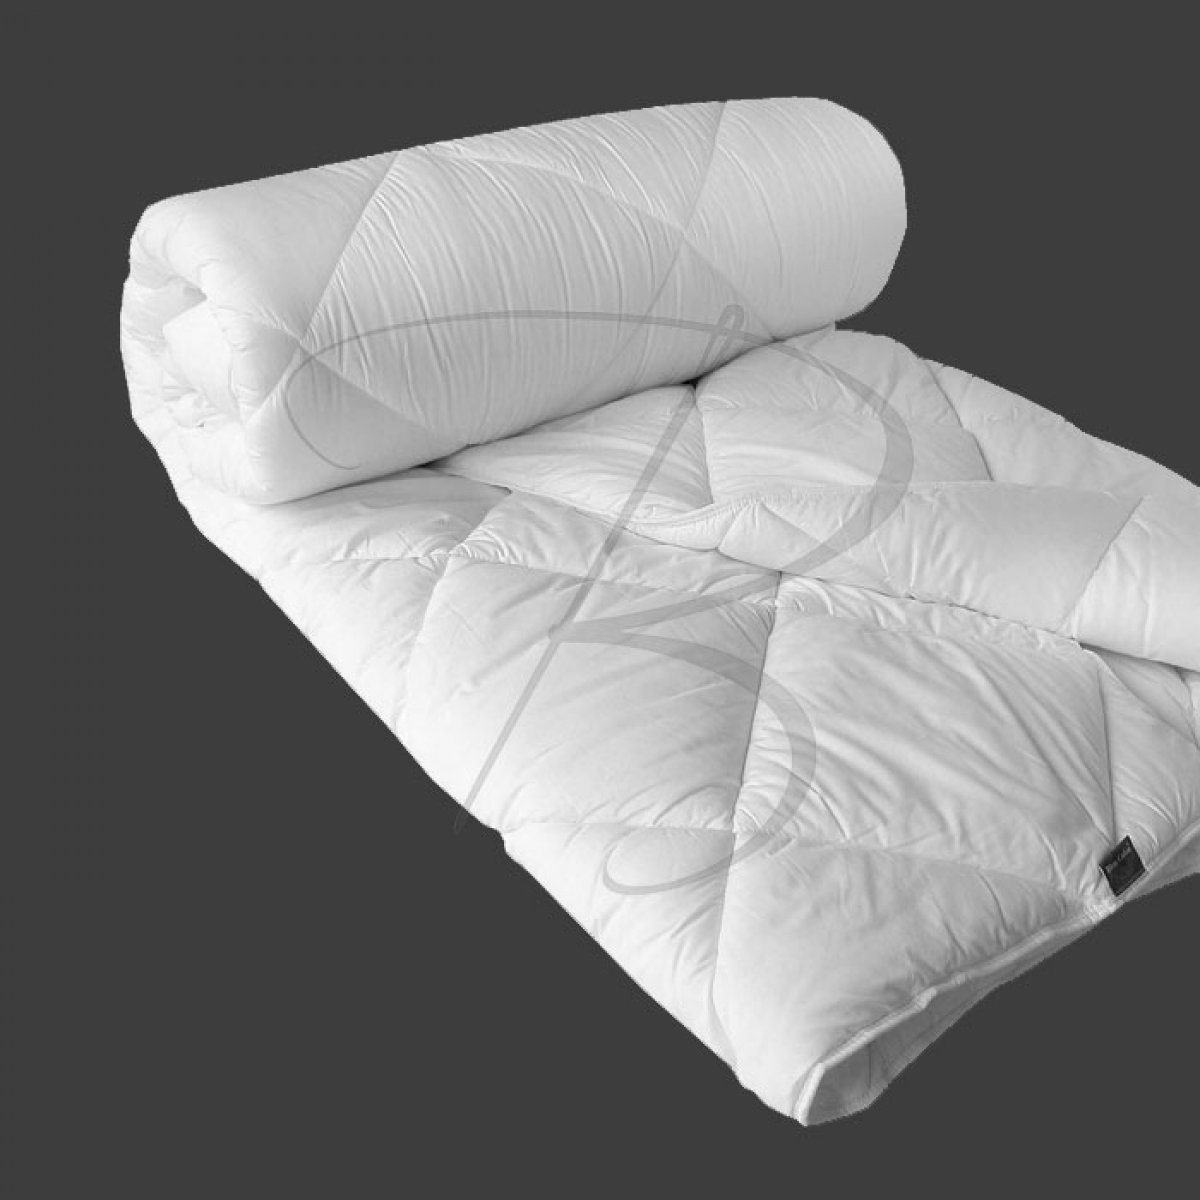 Pyrenees synthetic comforter - 350g/m² - 140 x 200